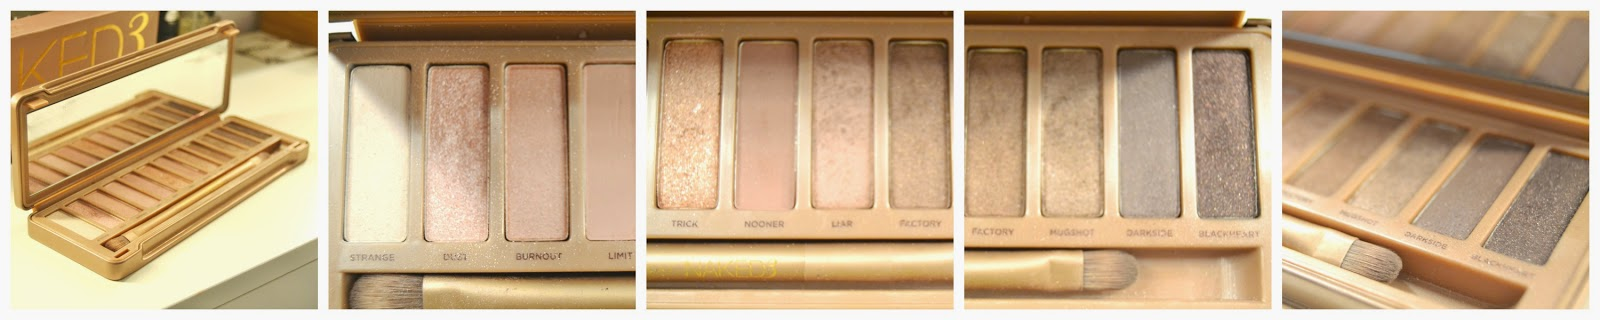 Urban Decay Naked 3 Eyeshadow Swatches Swatch